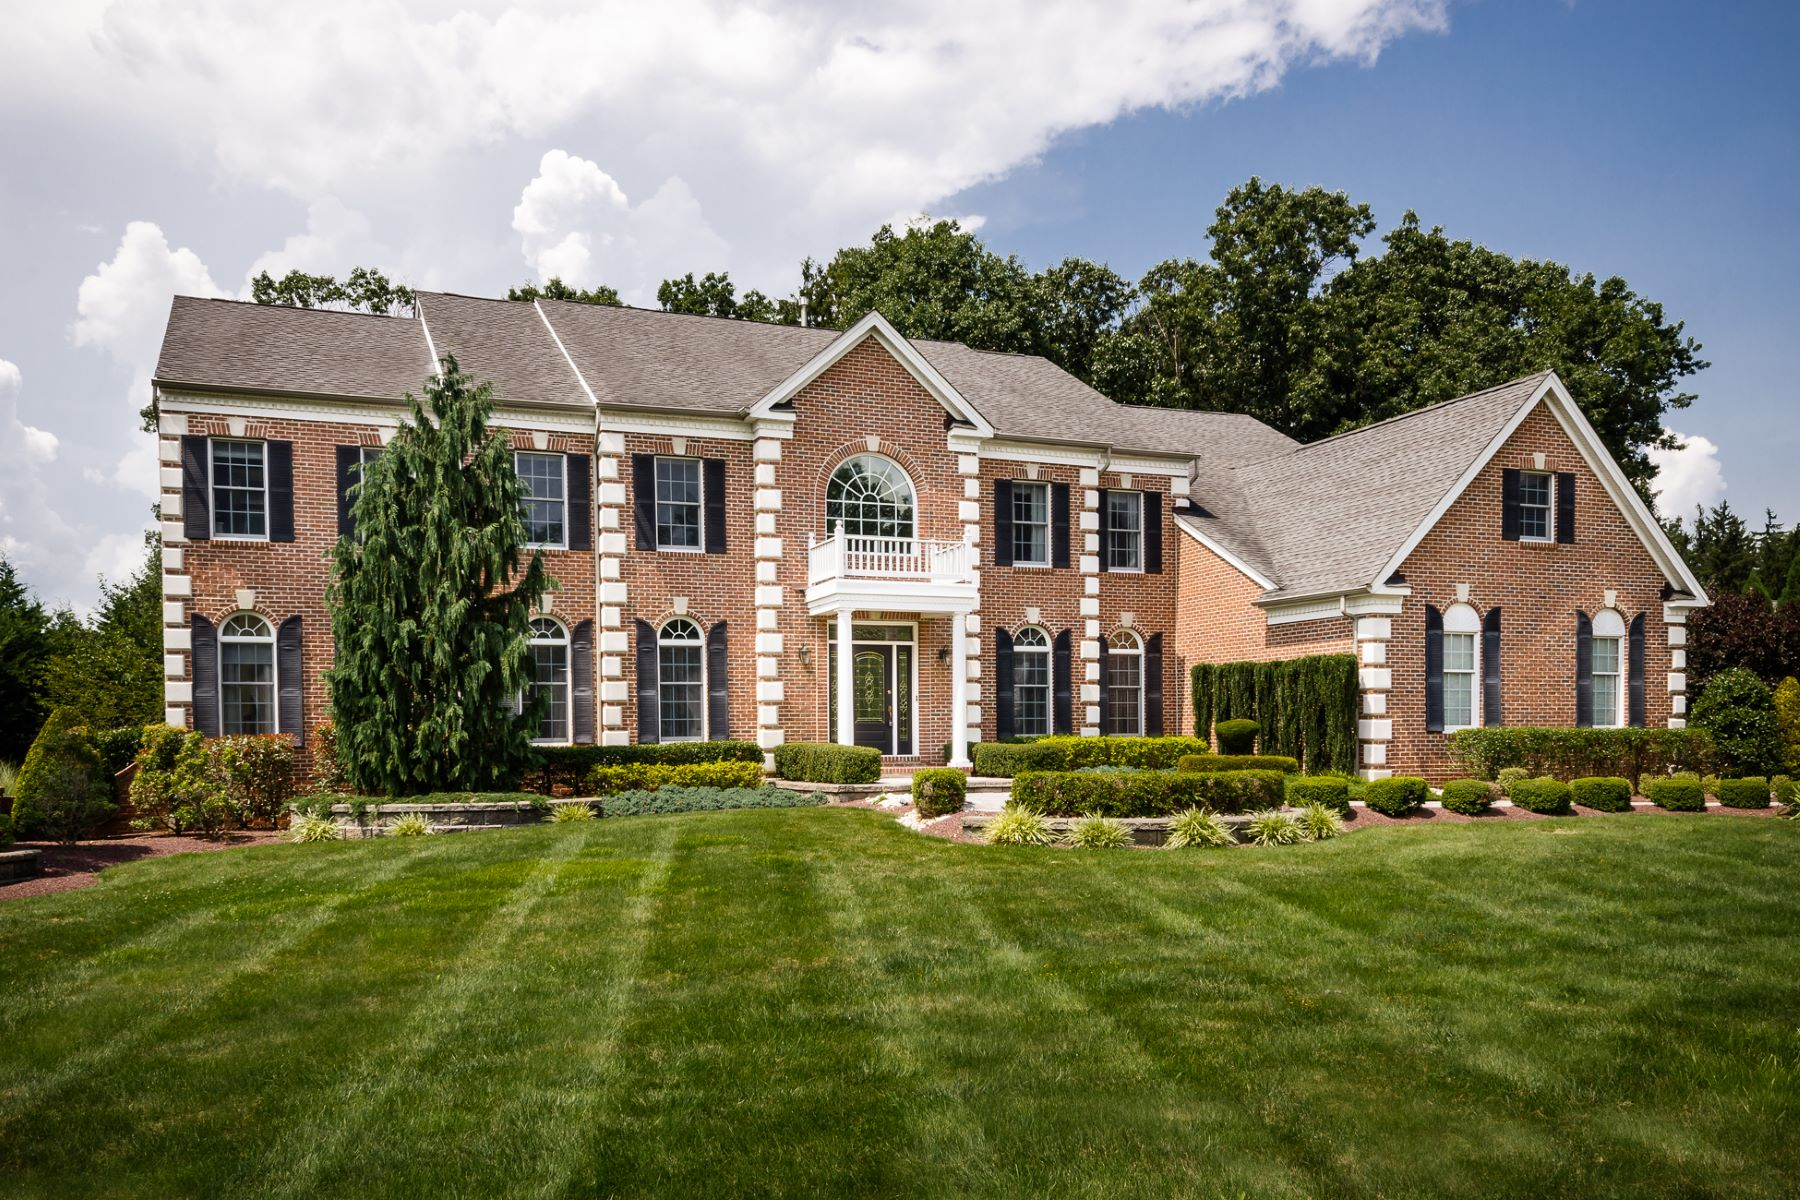 Single Family Home for Sale at Cranbury Colonial Celebrates Toll Brothers Luxury 14 Shady Brook Lane Cranbury, New Jersey 08512 United States